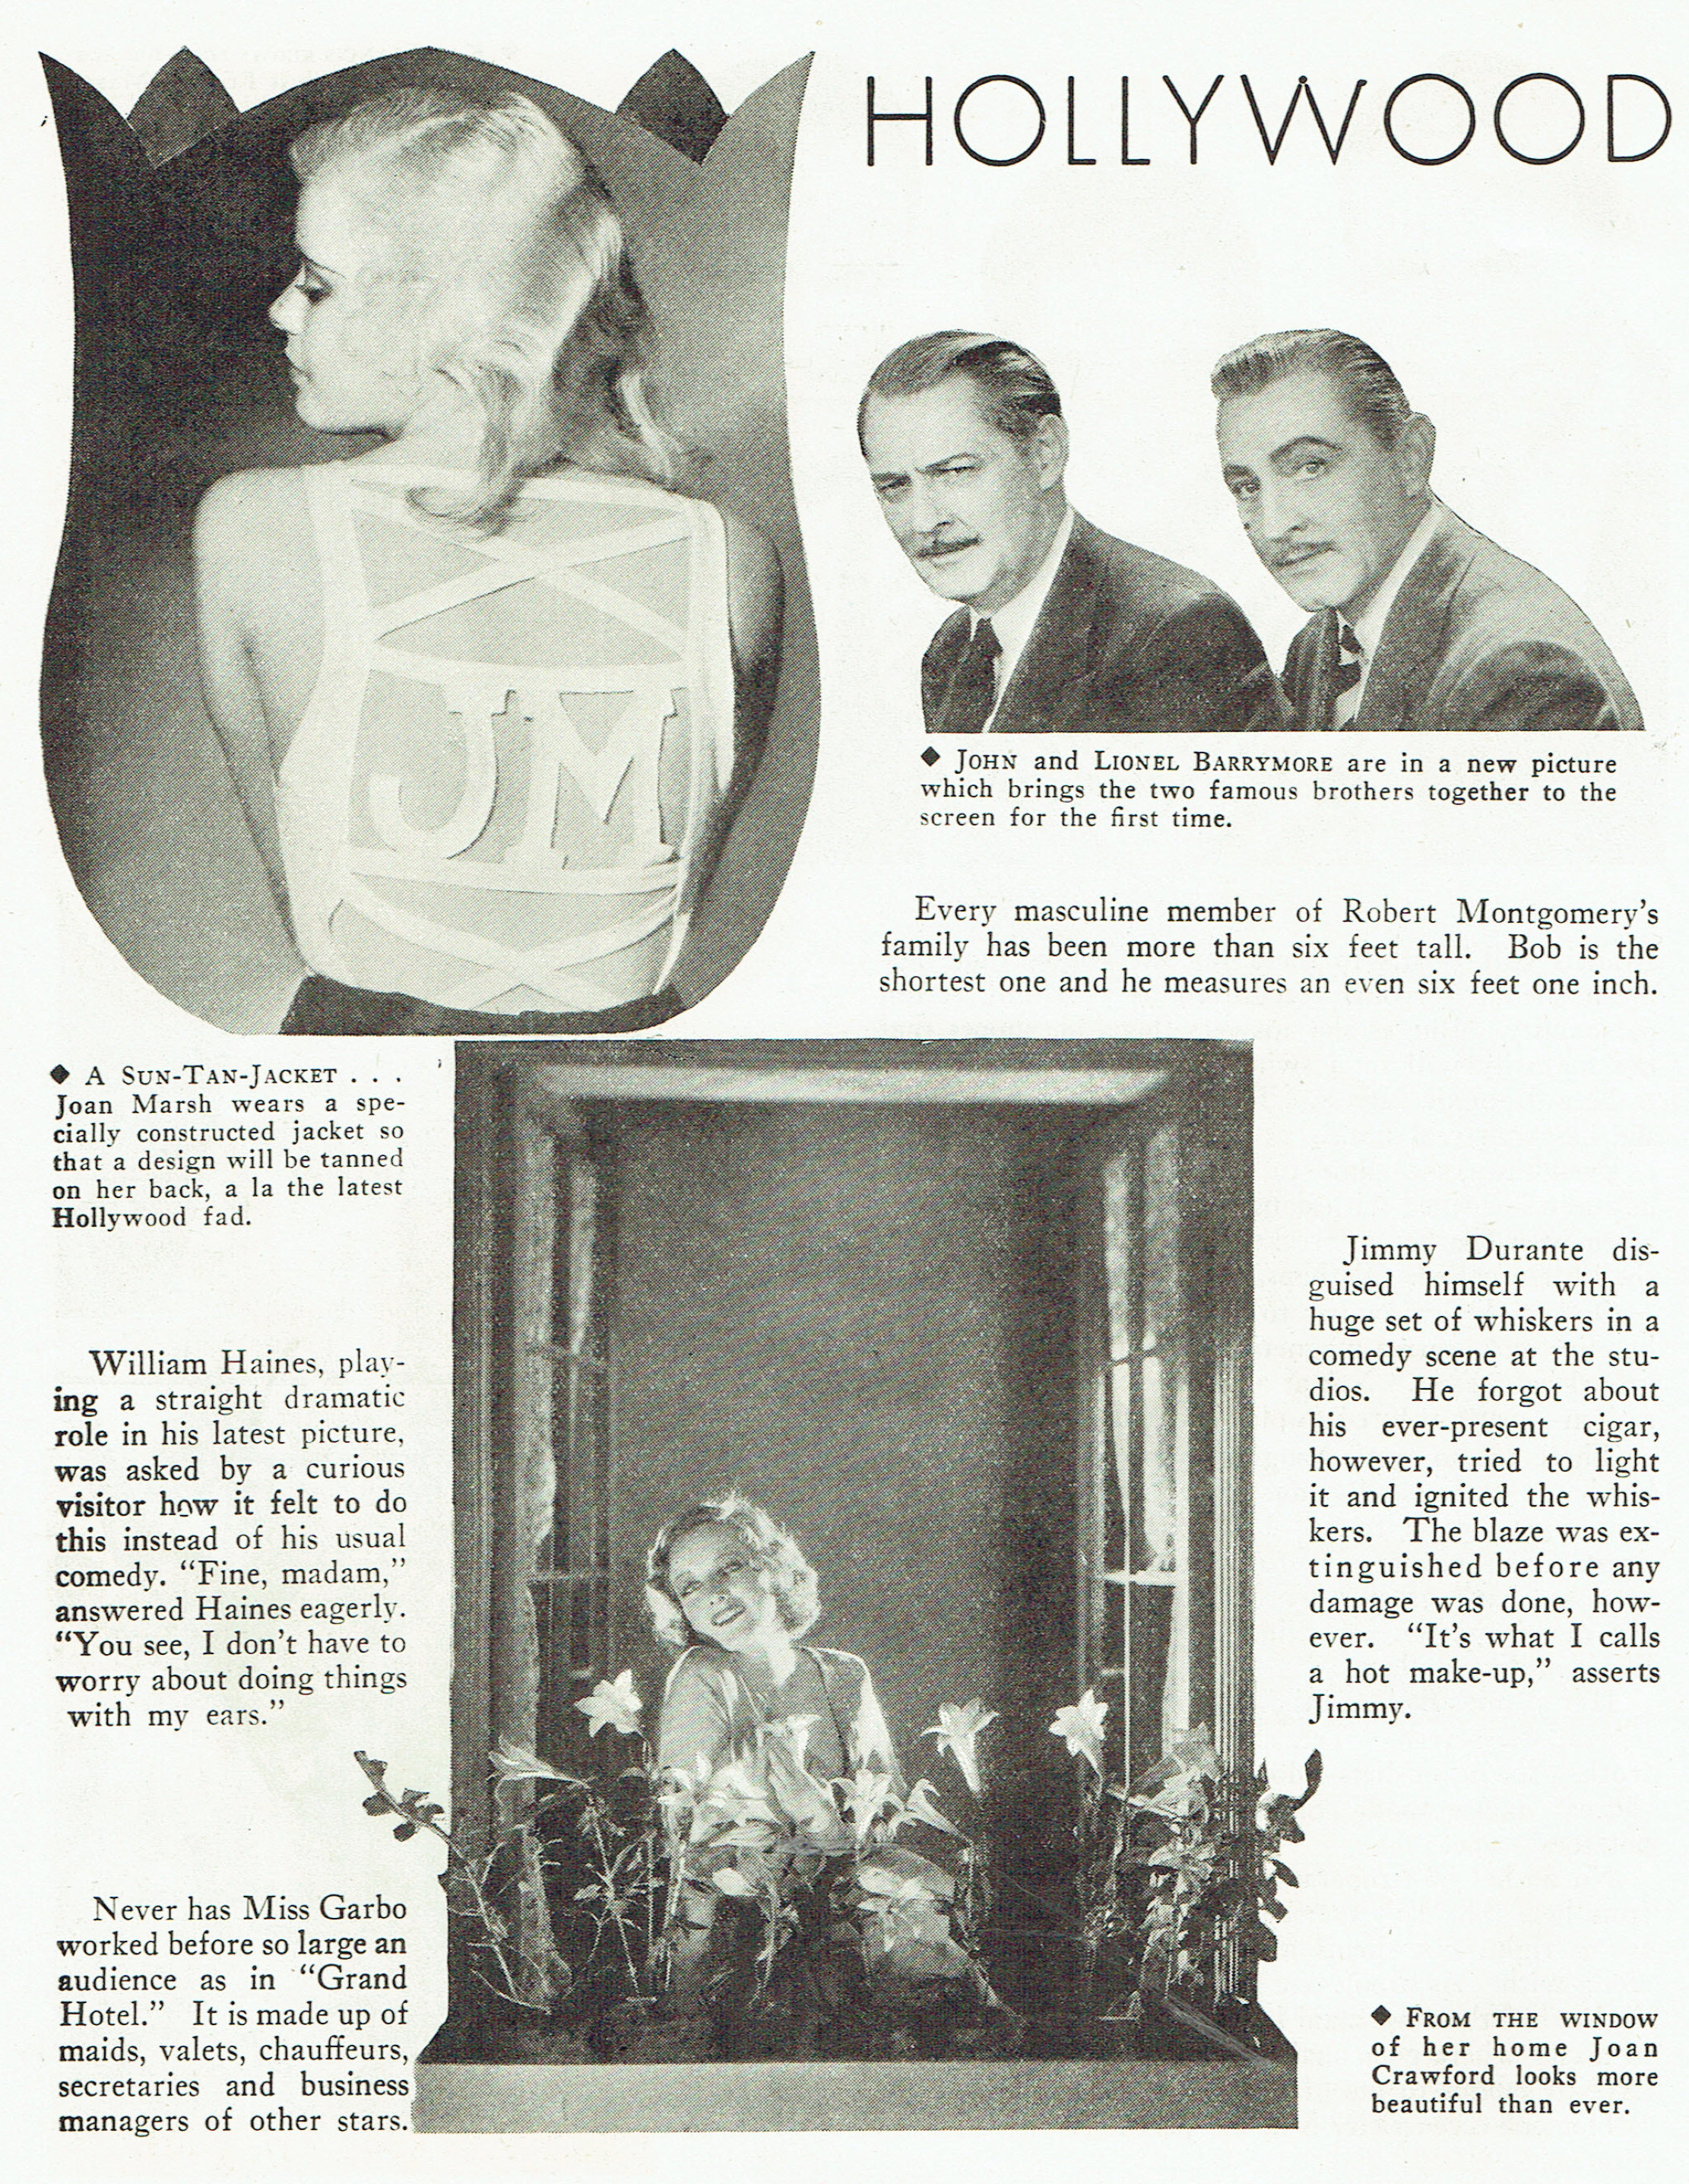 carole lombard publix theatre screen review april 1932fa